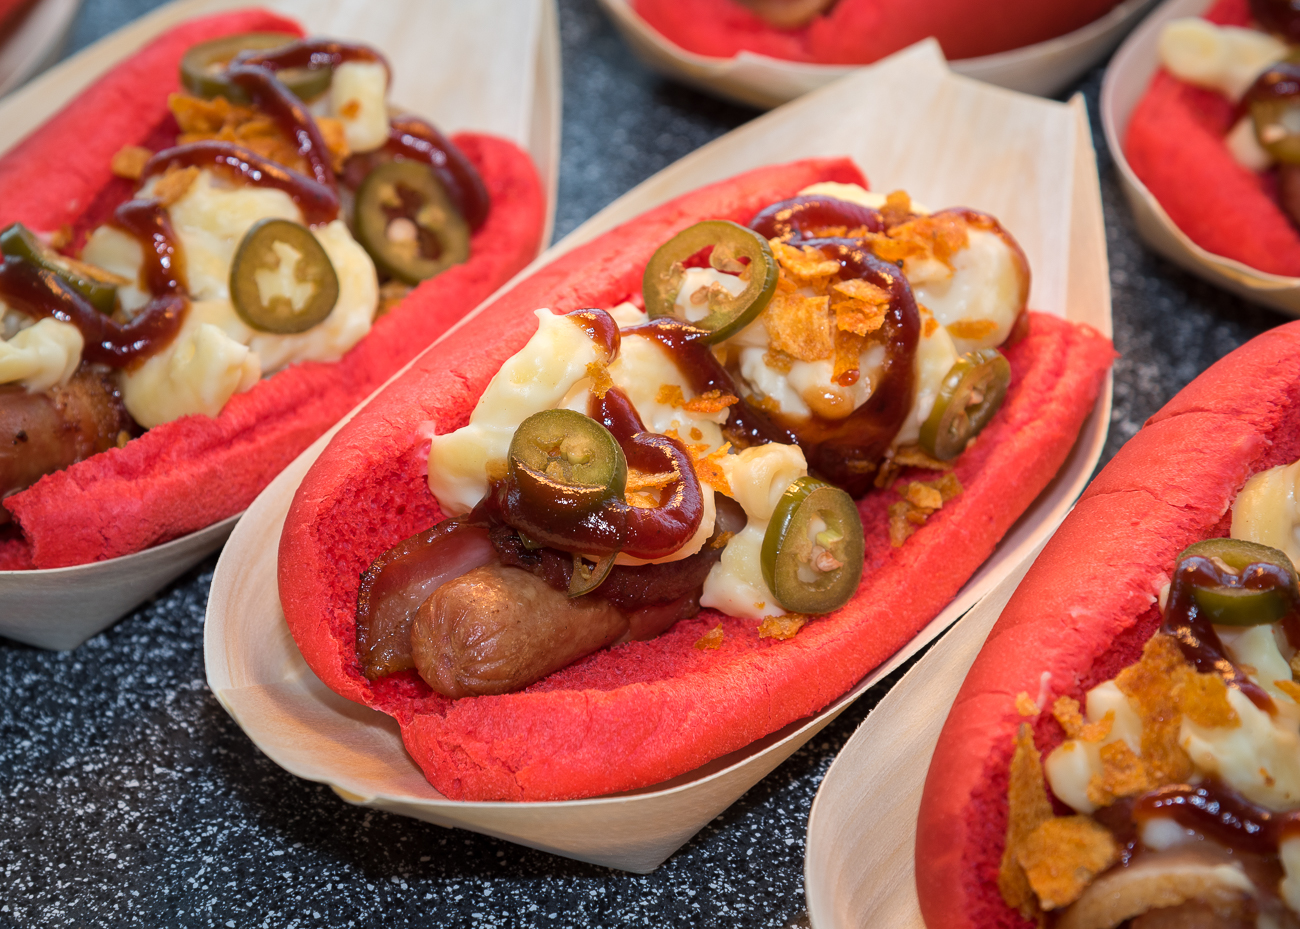 Mac & Cheese Dog: Bacon wrapped hot dog with sweet barbecue sauce, pickled jalapenos, and crushed Grippos (available in the Scout's Club) / Image: Phil Armstrong, Cincinnati Refined // Published: 3.21.19